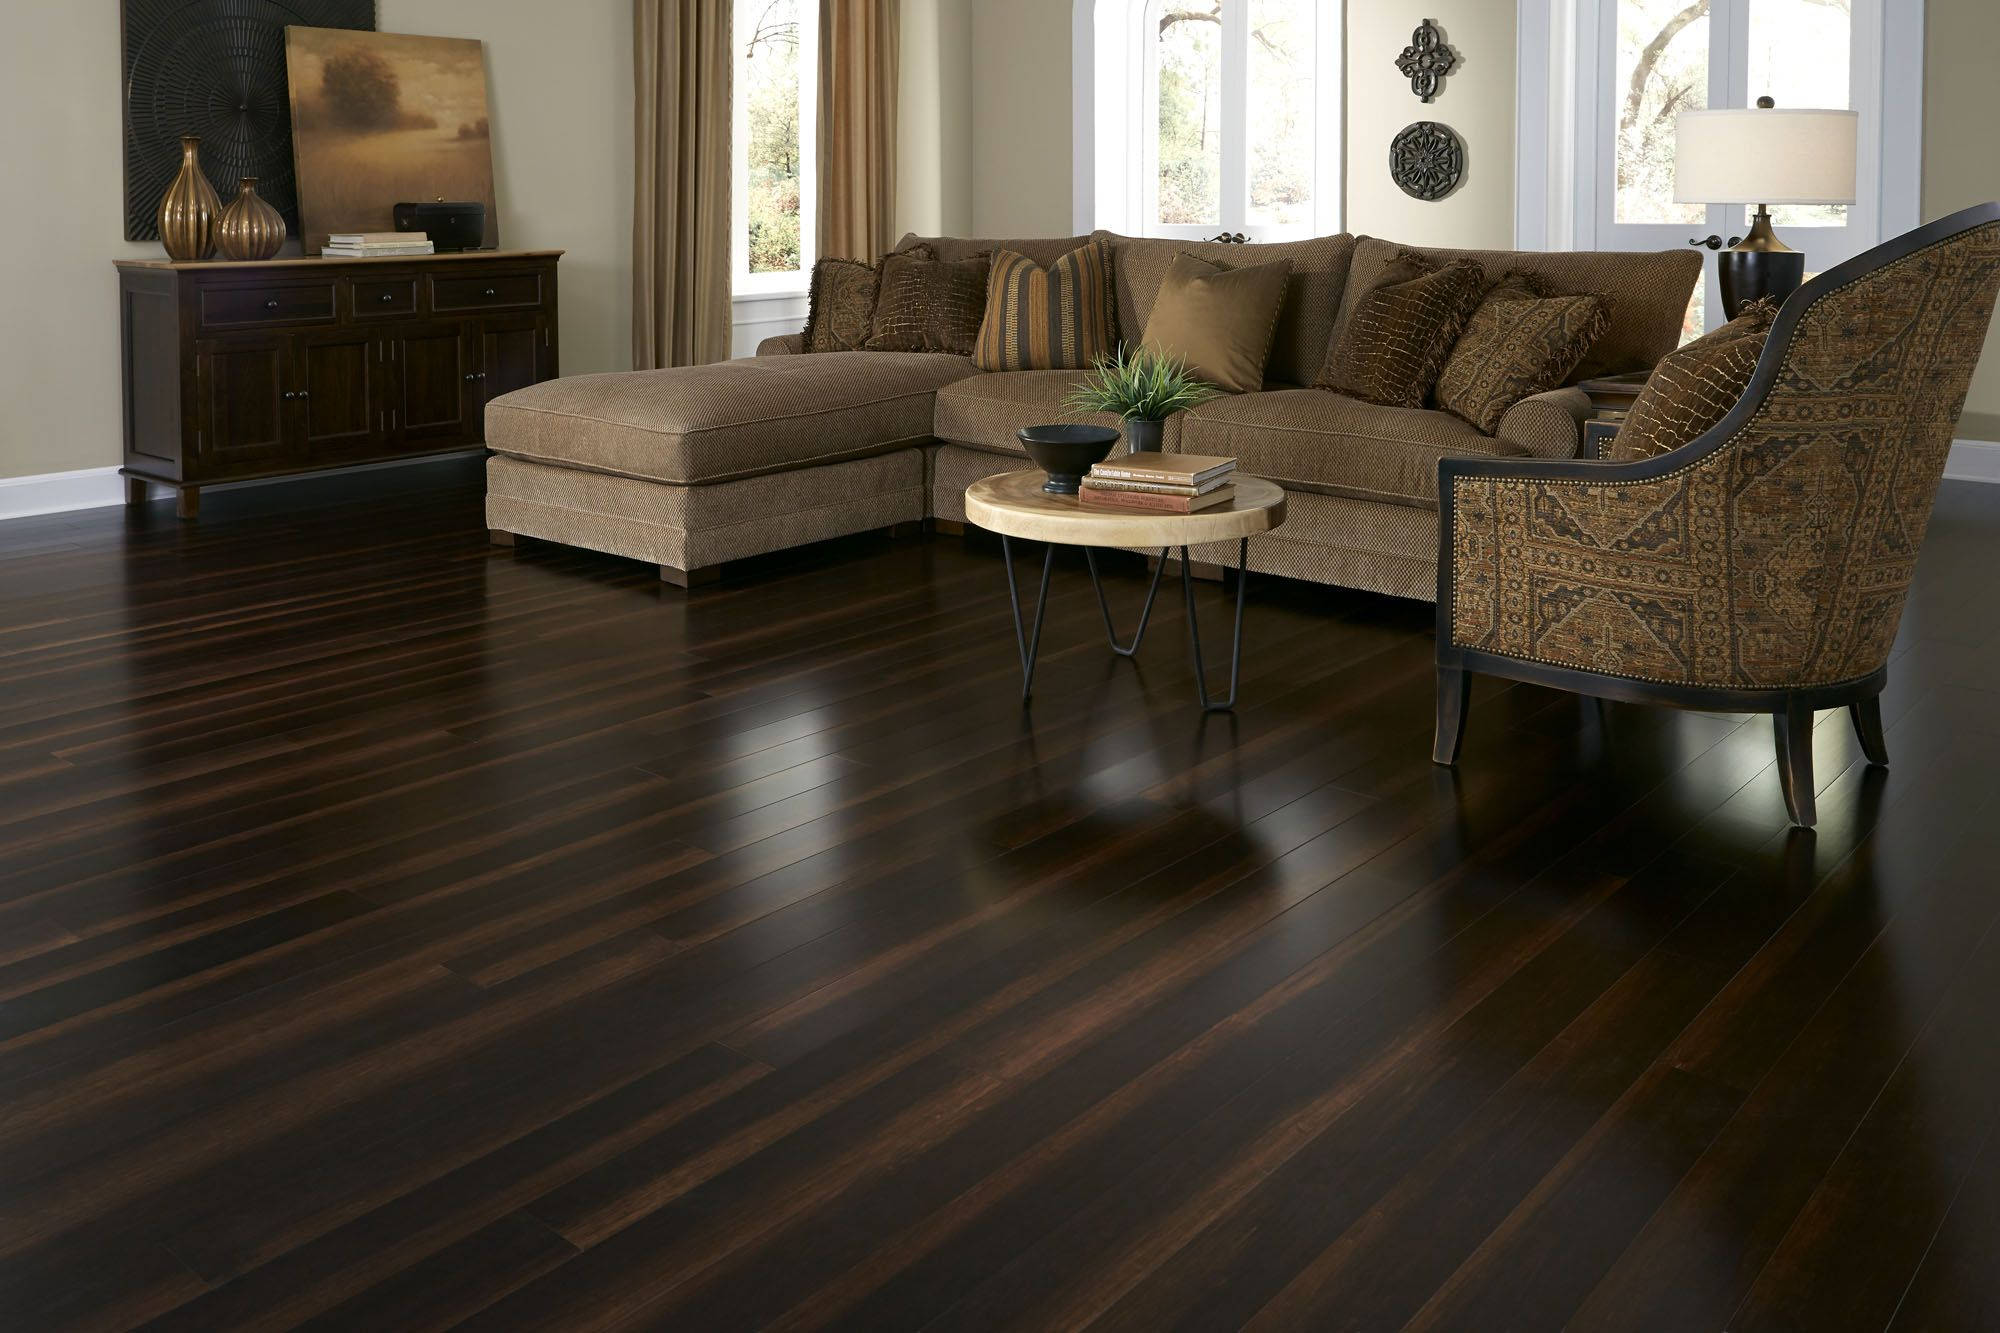 floors designs bamboo star morning home to flooring images best way floor clean cleaning of furniture